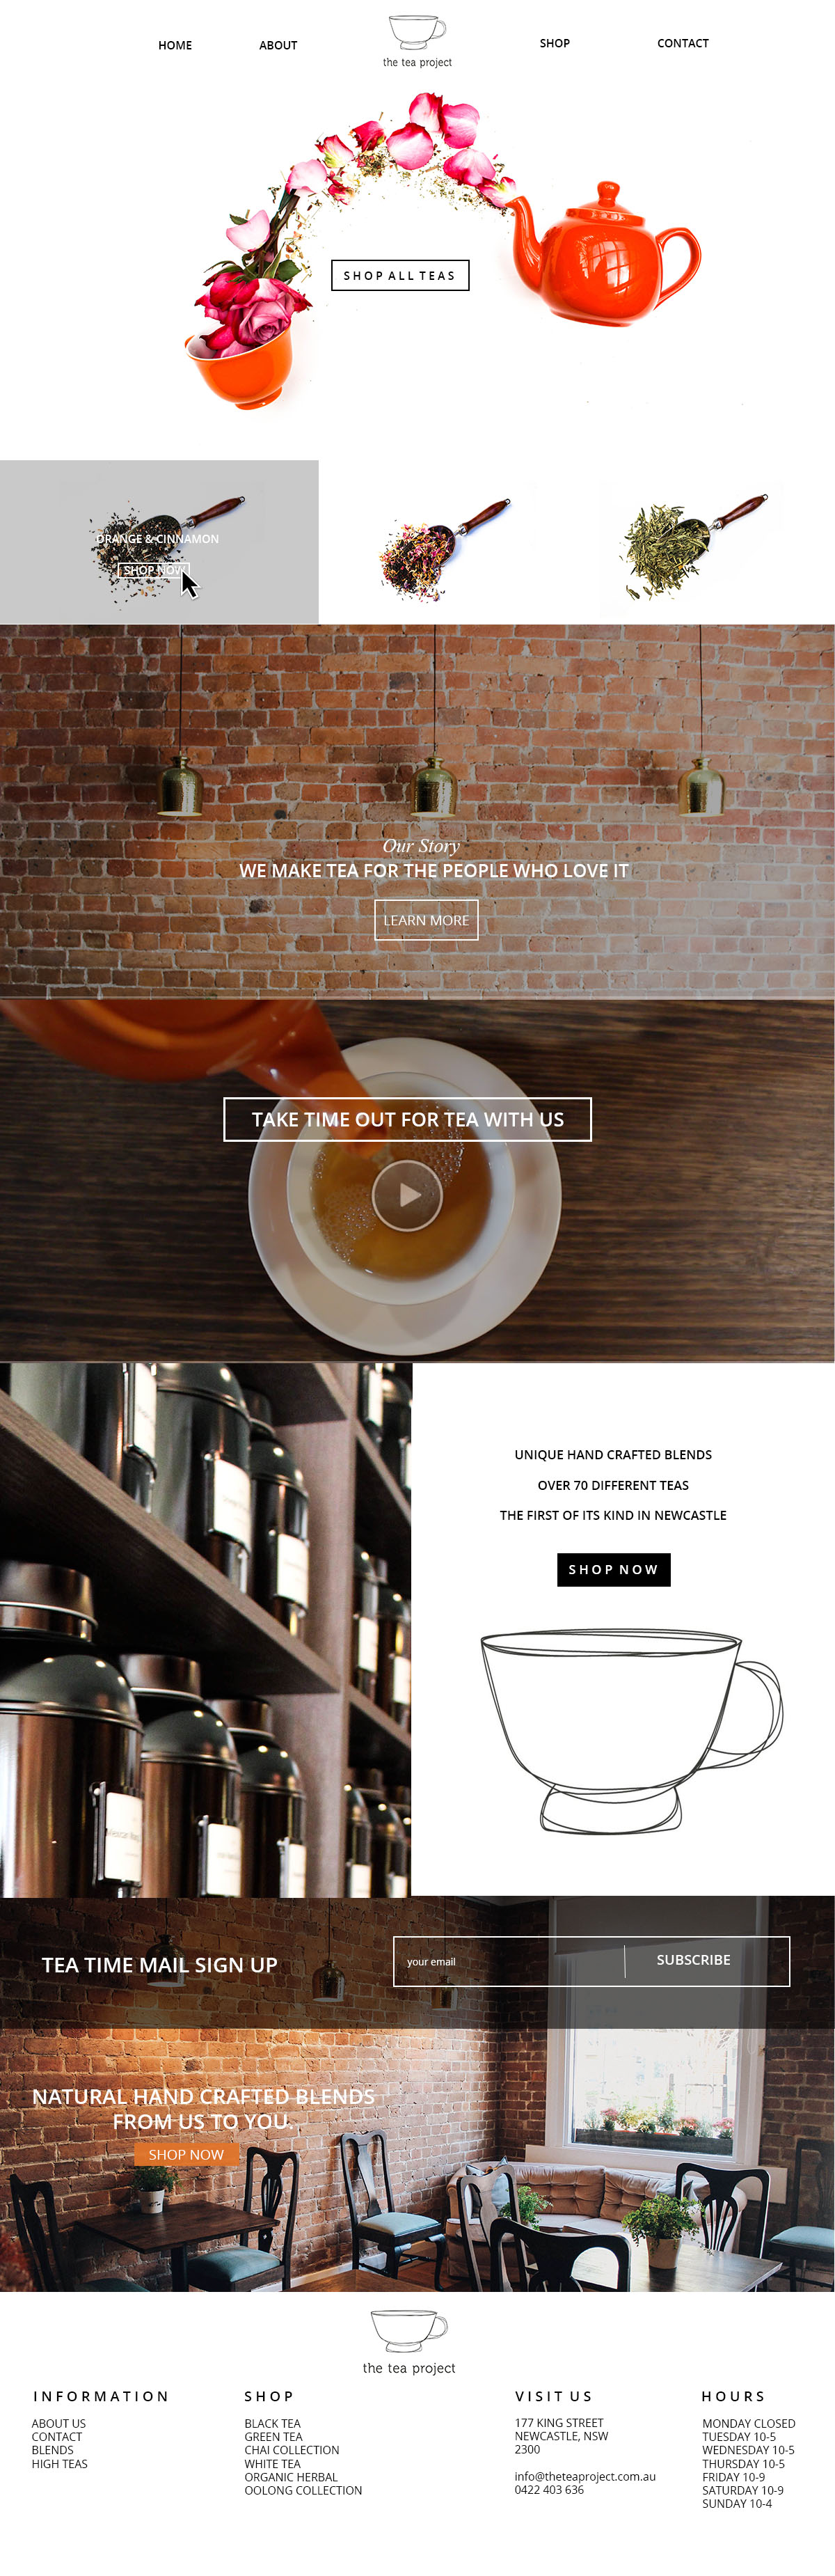 the-tea-project-home-page (1) copy.jpg